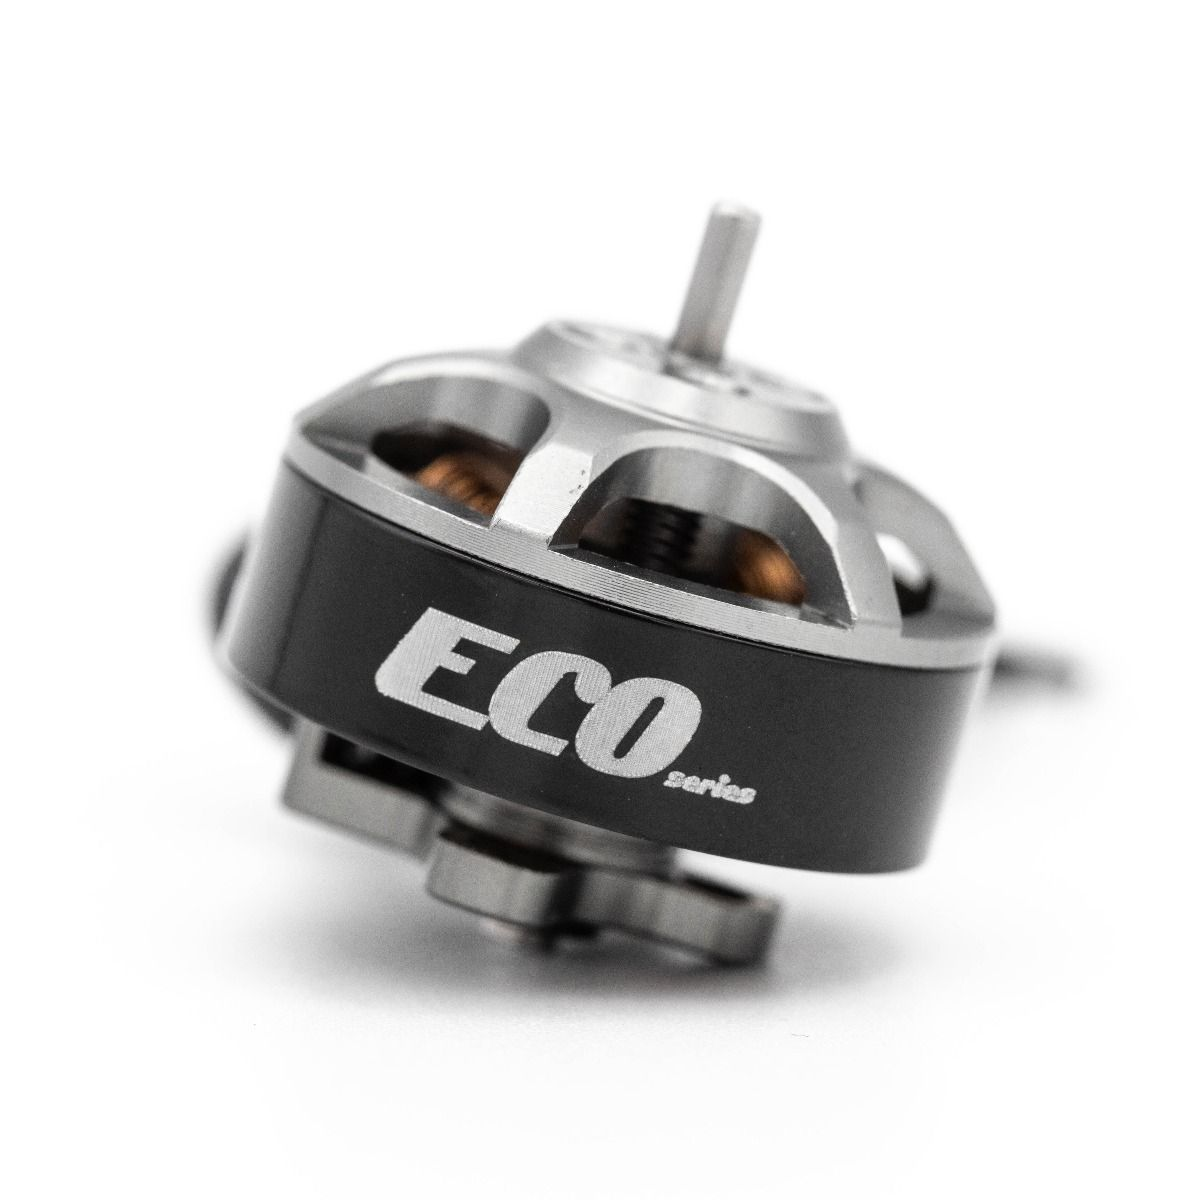 EMAX ECO SERIES <b>1404 3700KV 2-4S</b> BRUSHLESS MOTOR